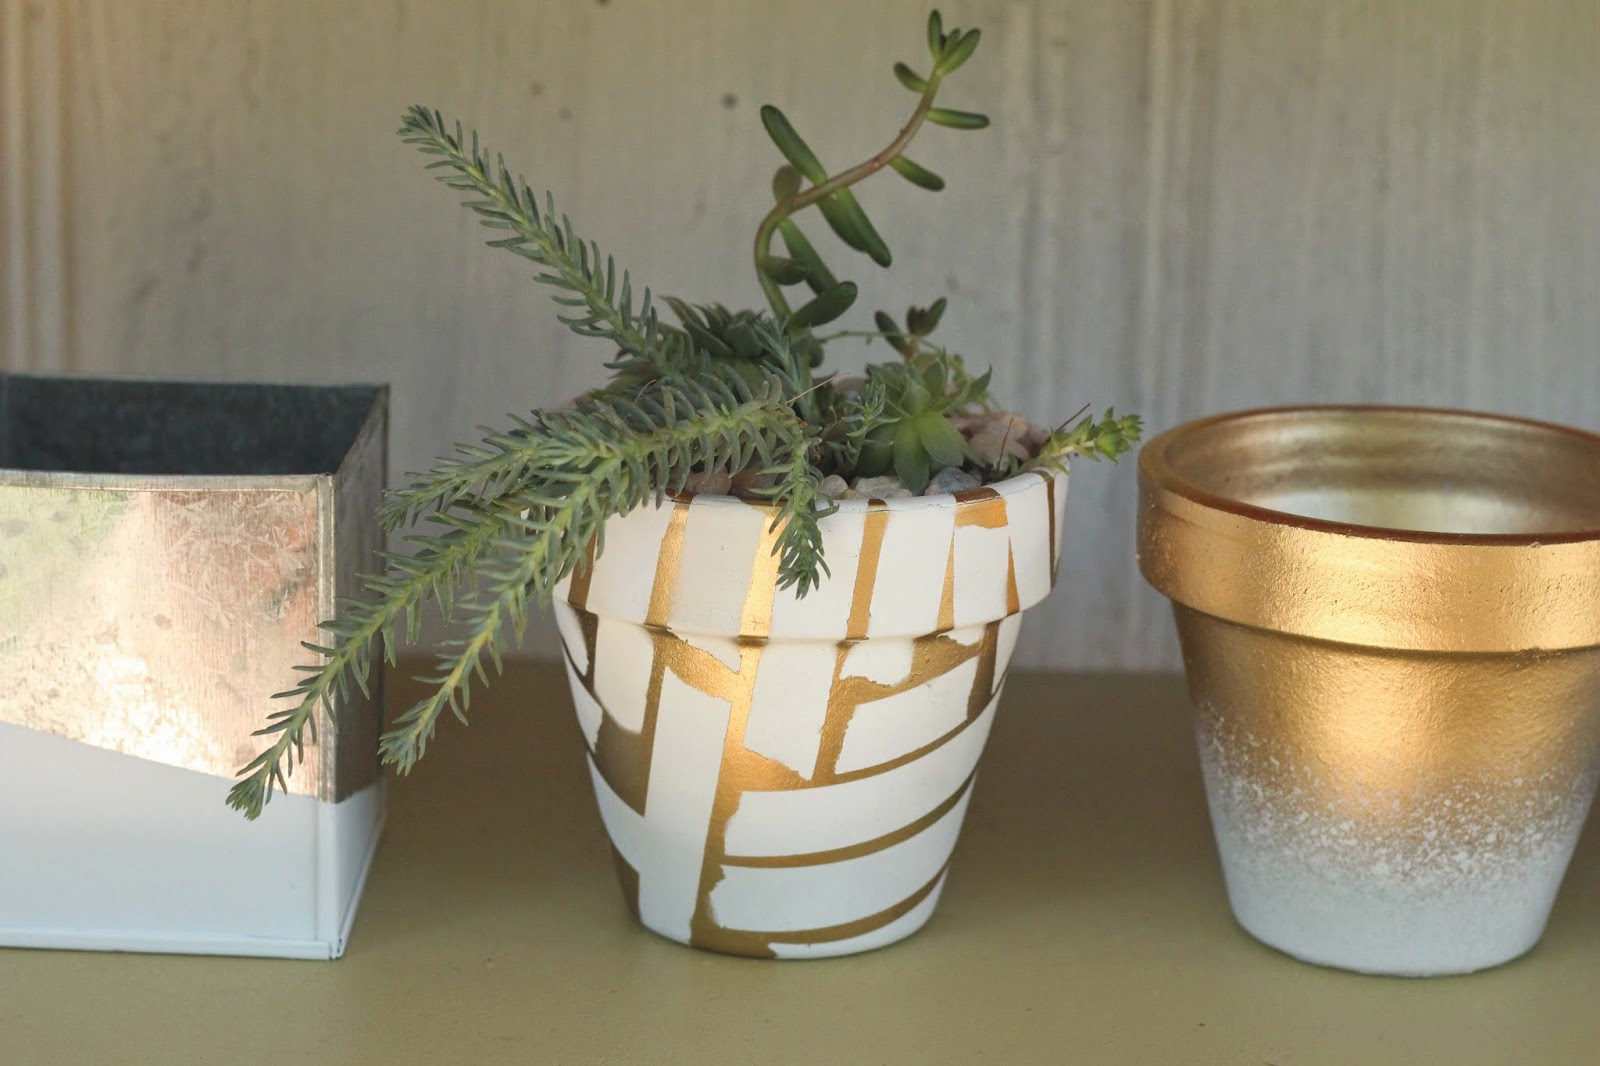 Completely new diy: spray painted pots TZ84